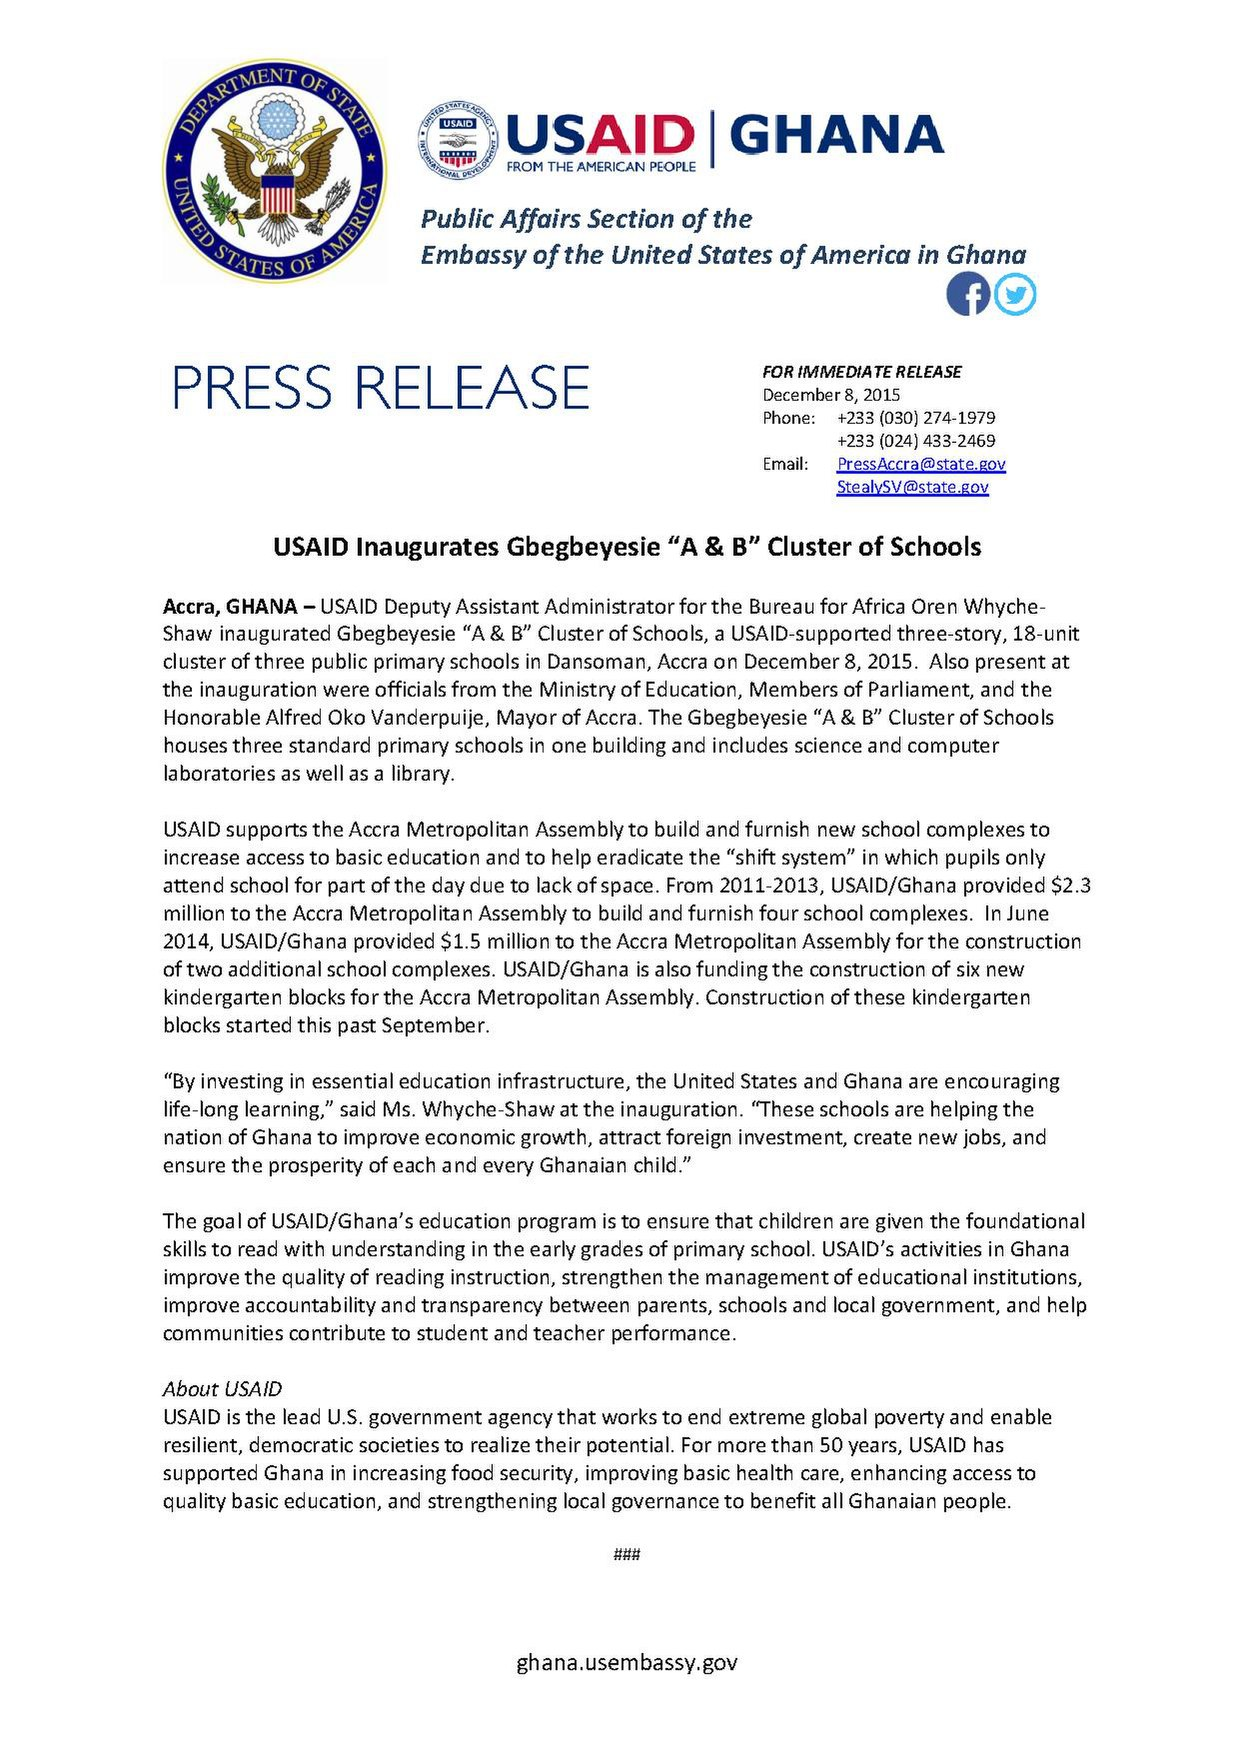 File usaid press release school inauguration 12 final for New employee press release template